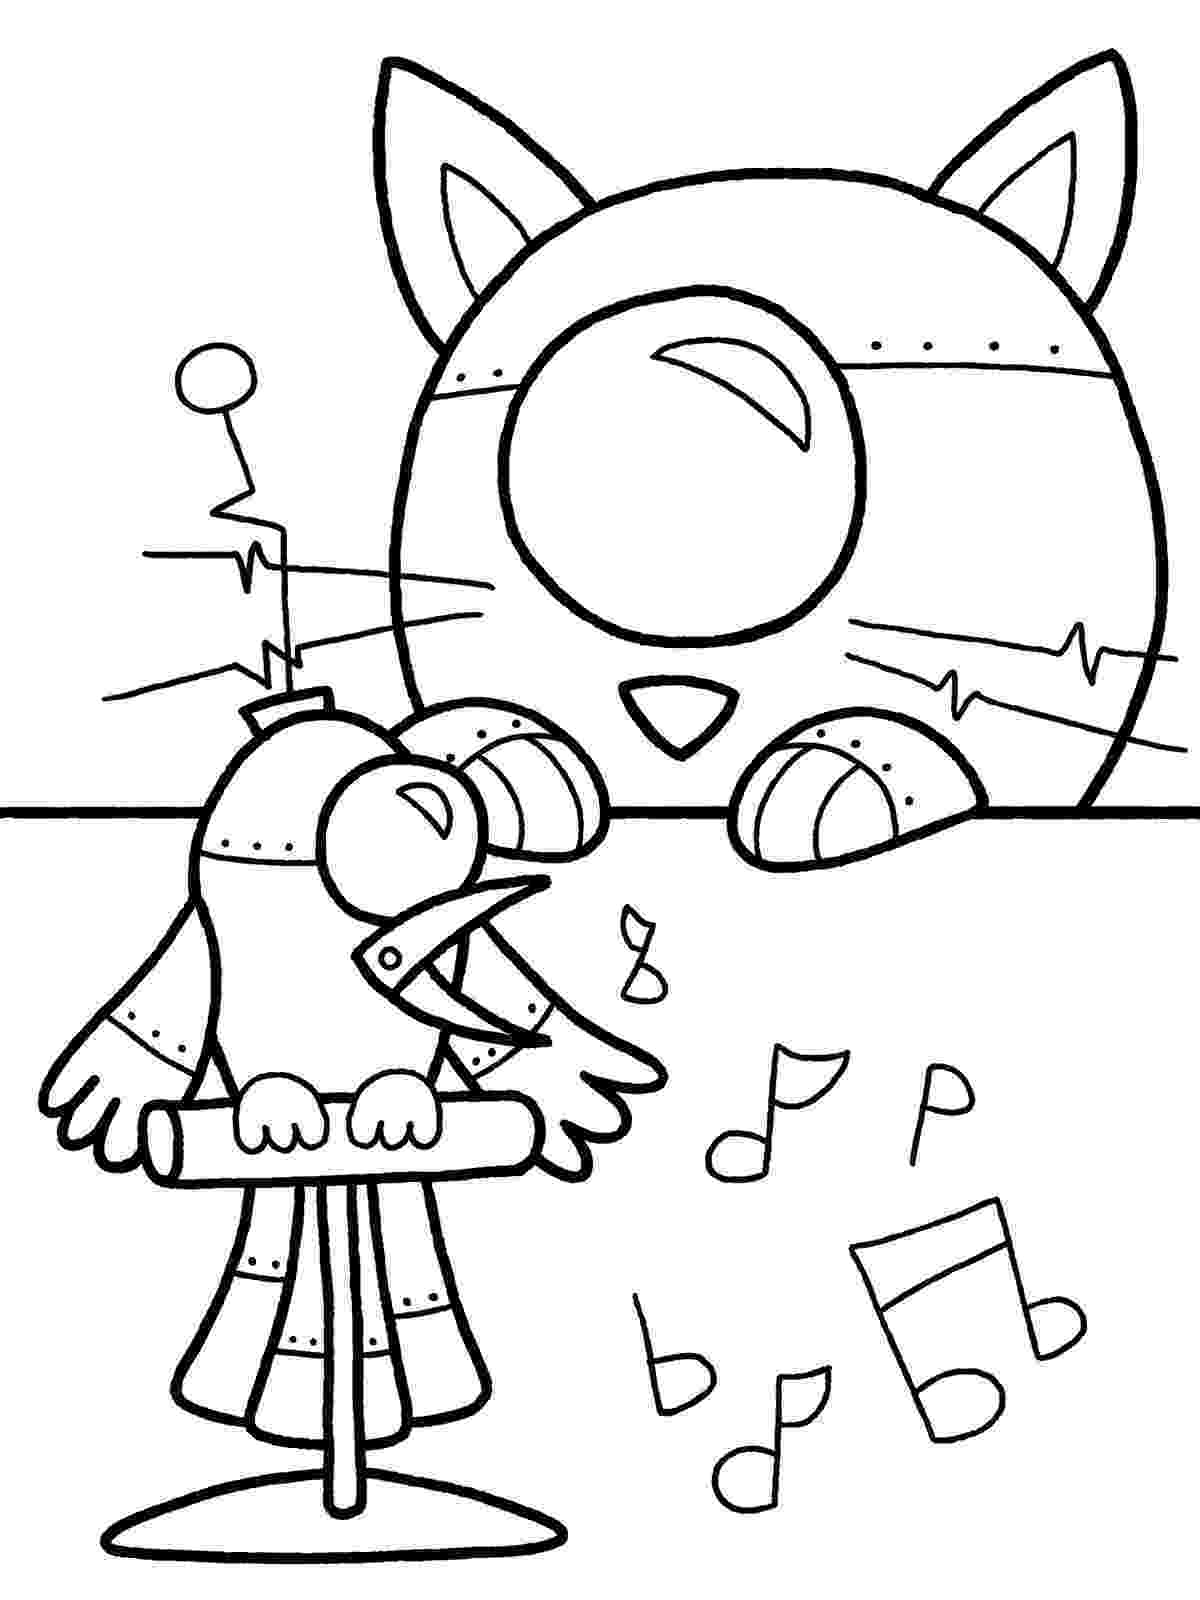 coloring page robot witty title coming soon inktober continued robot page coloring